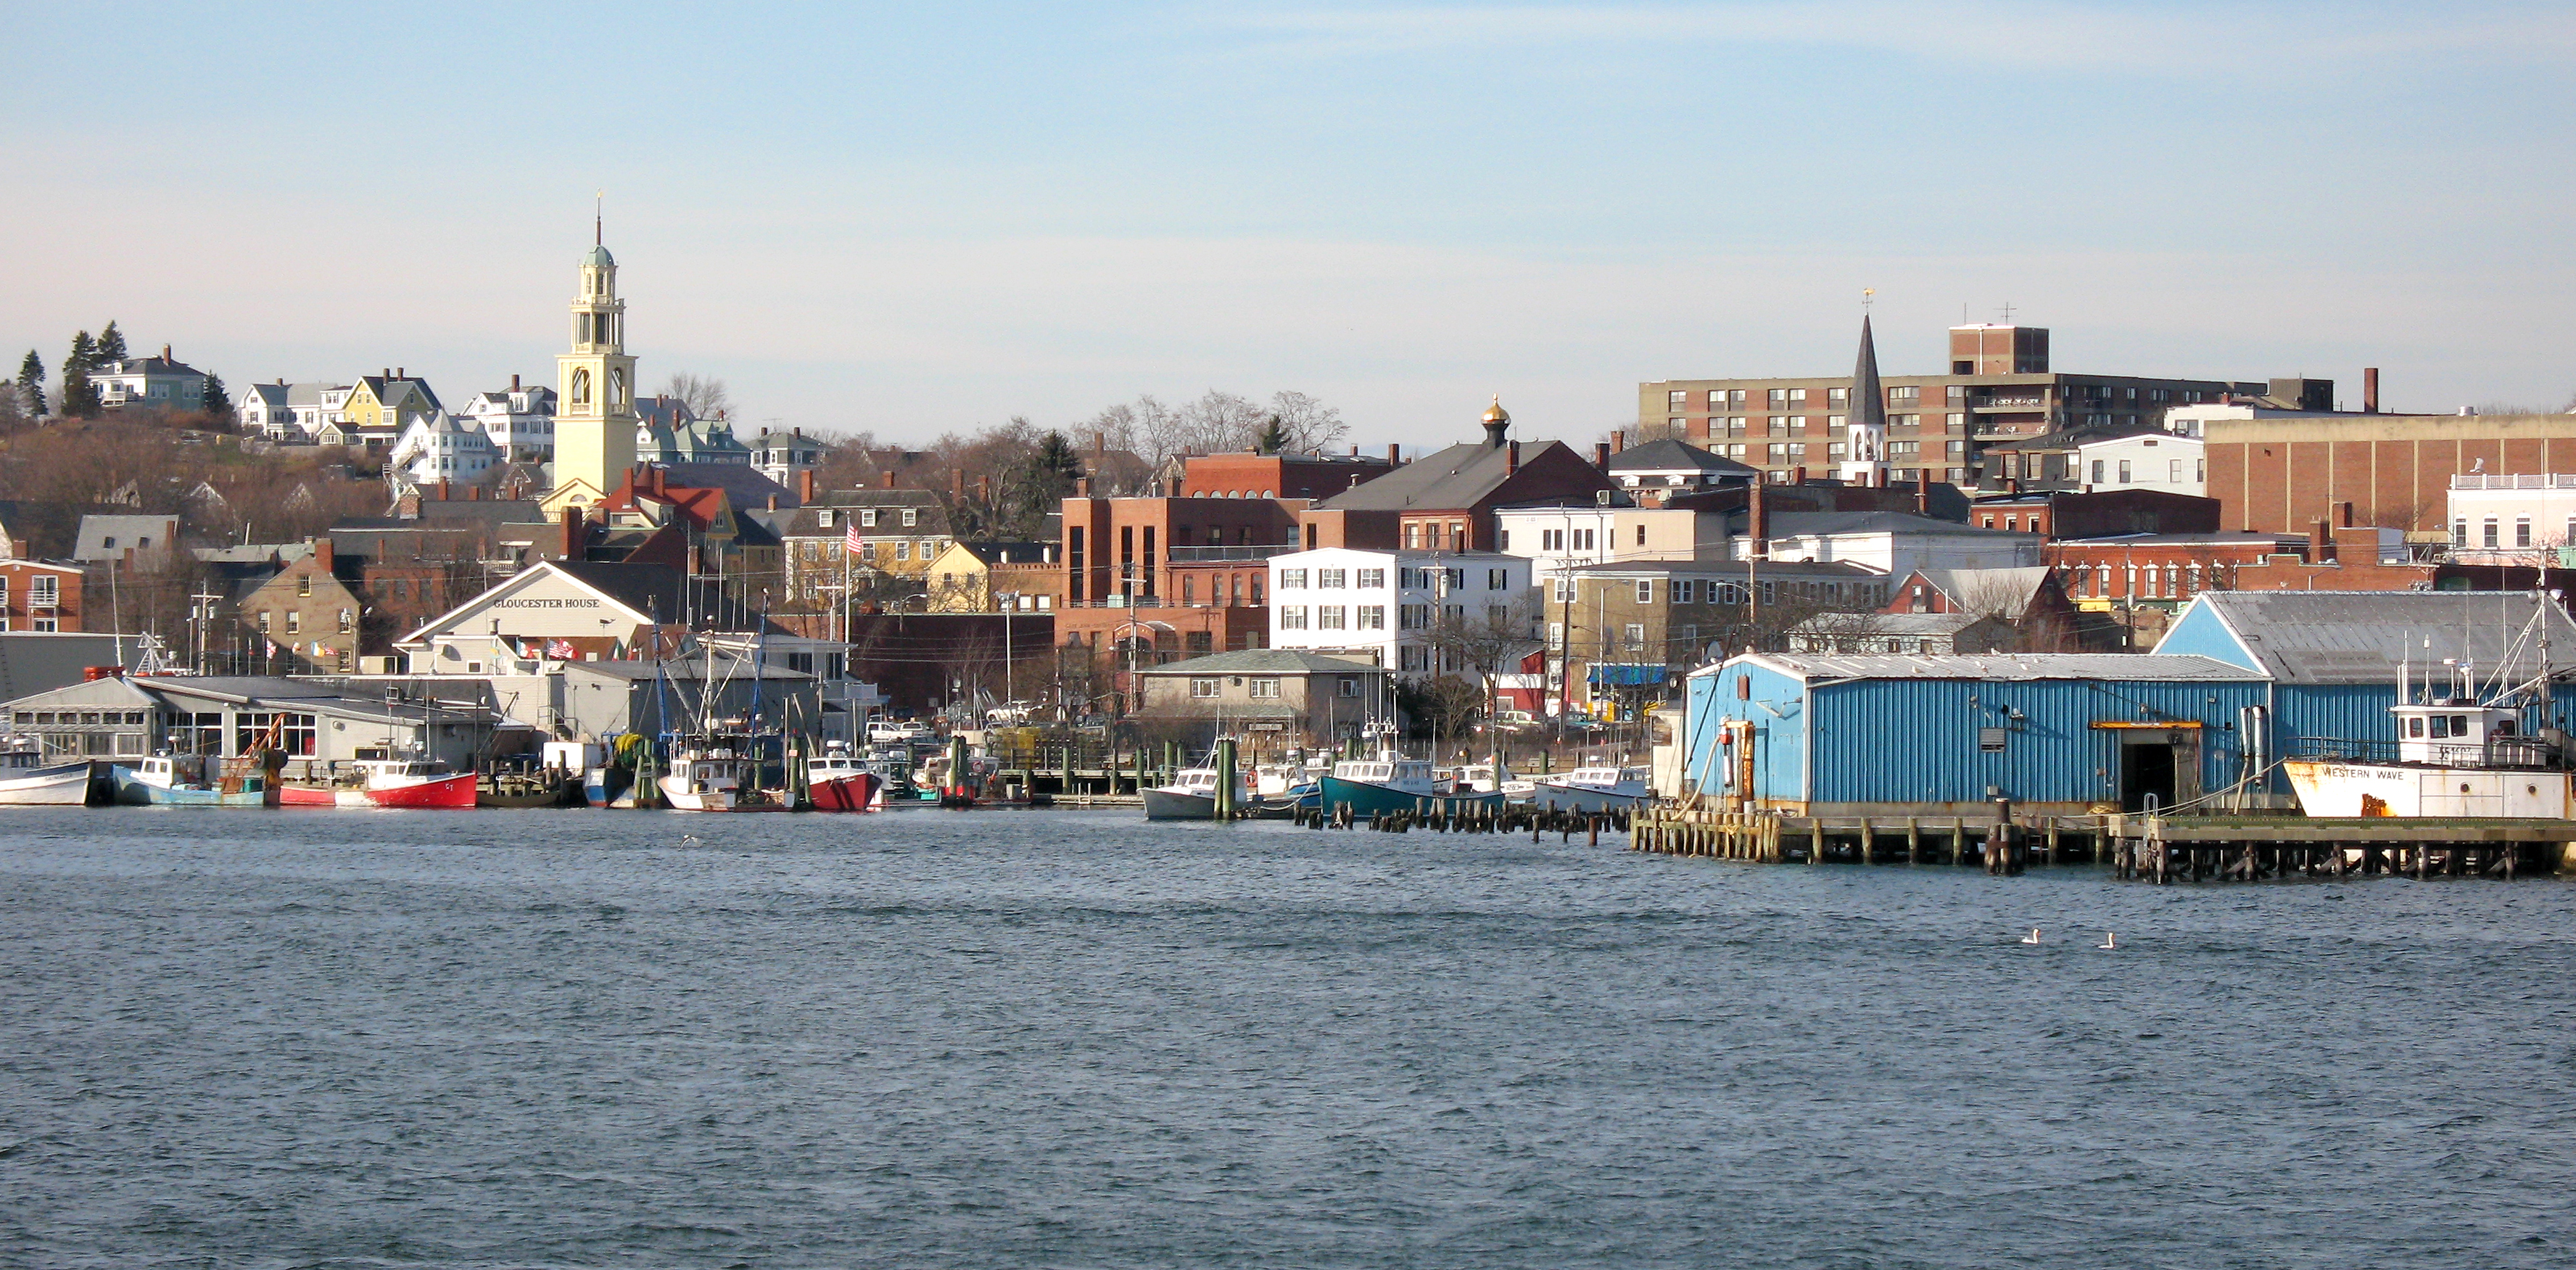 File:Gloucester MA - harbour.jpg - Wikimedia Commons